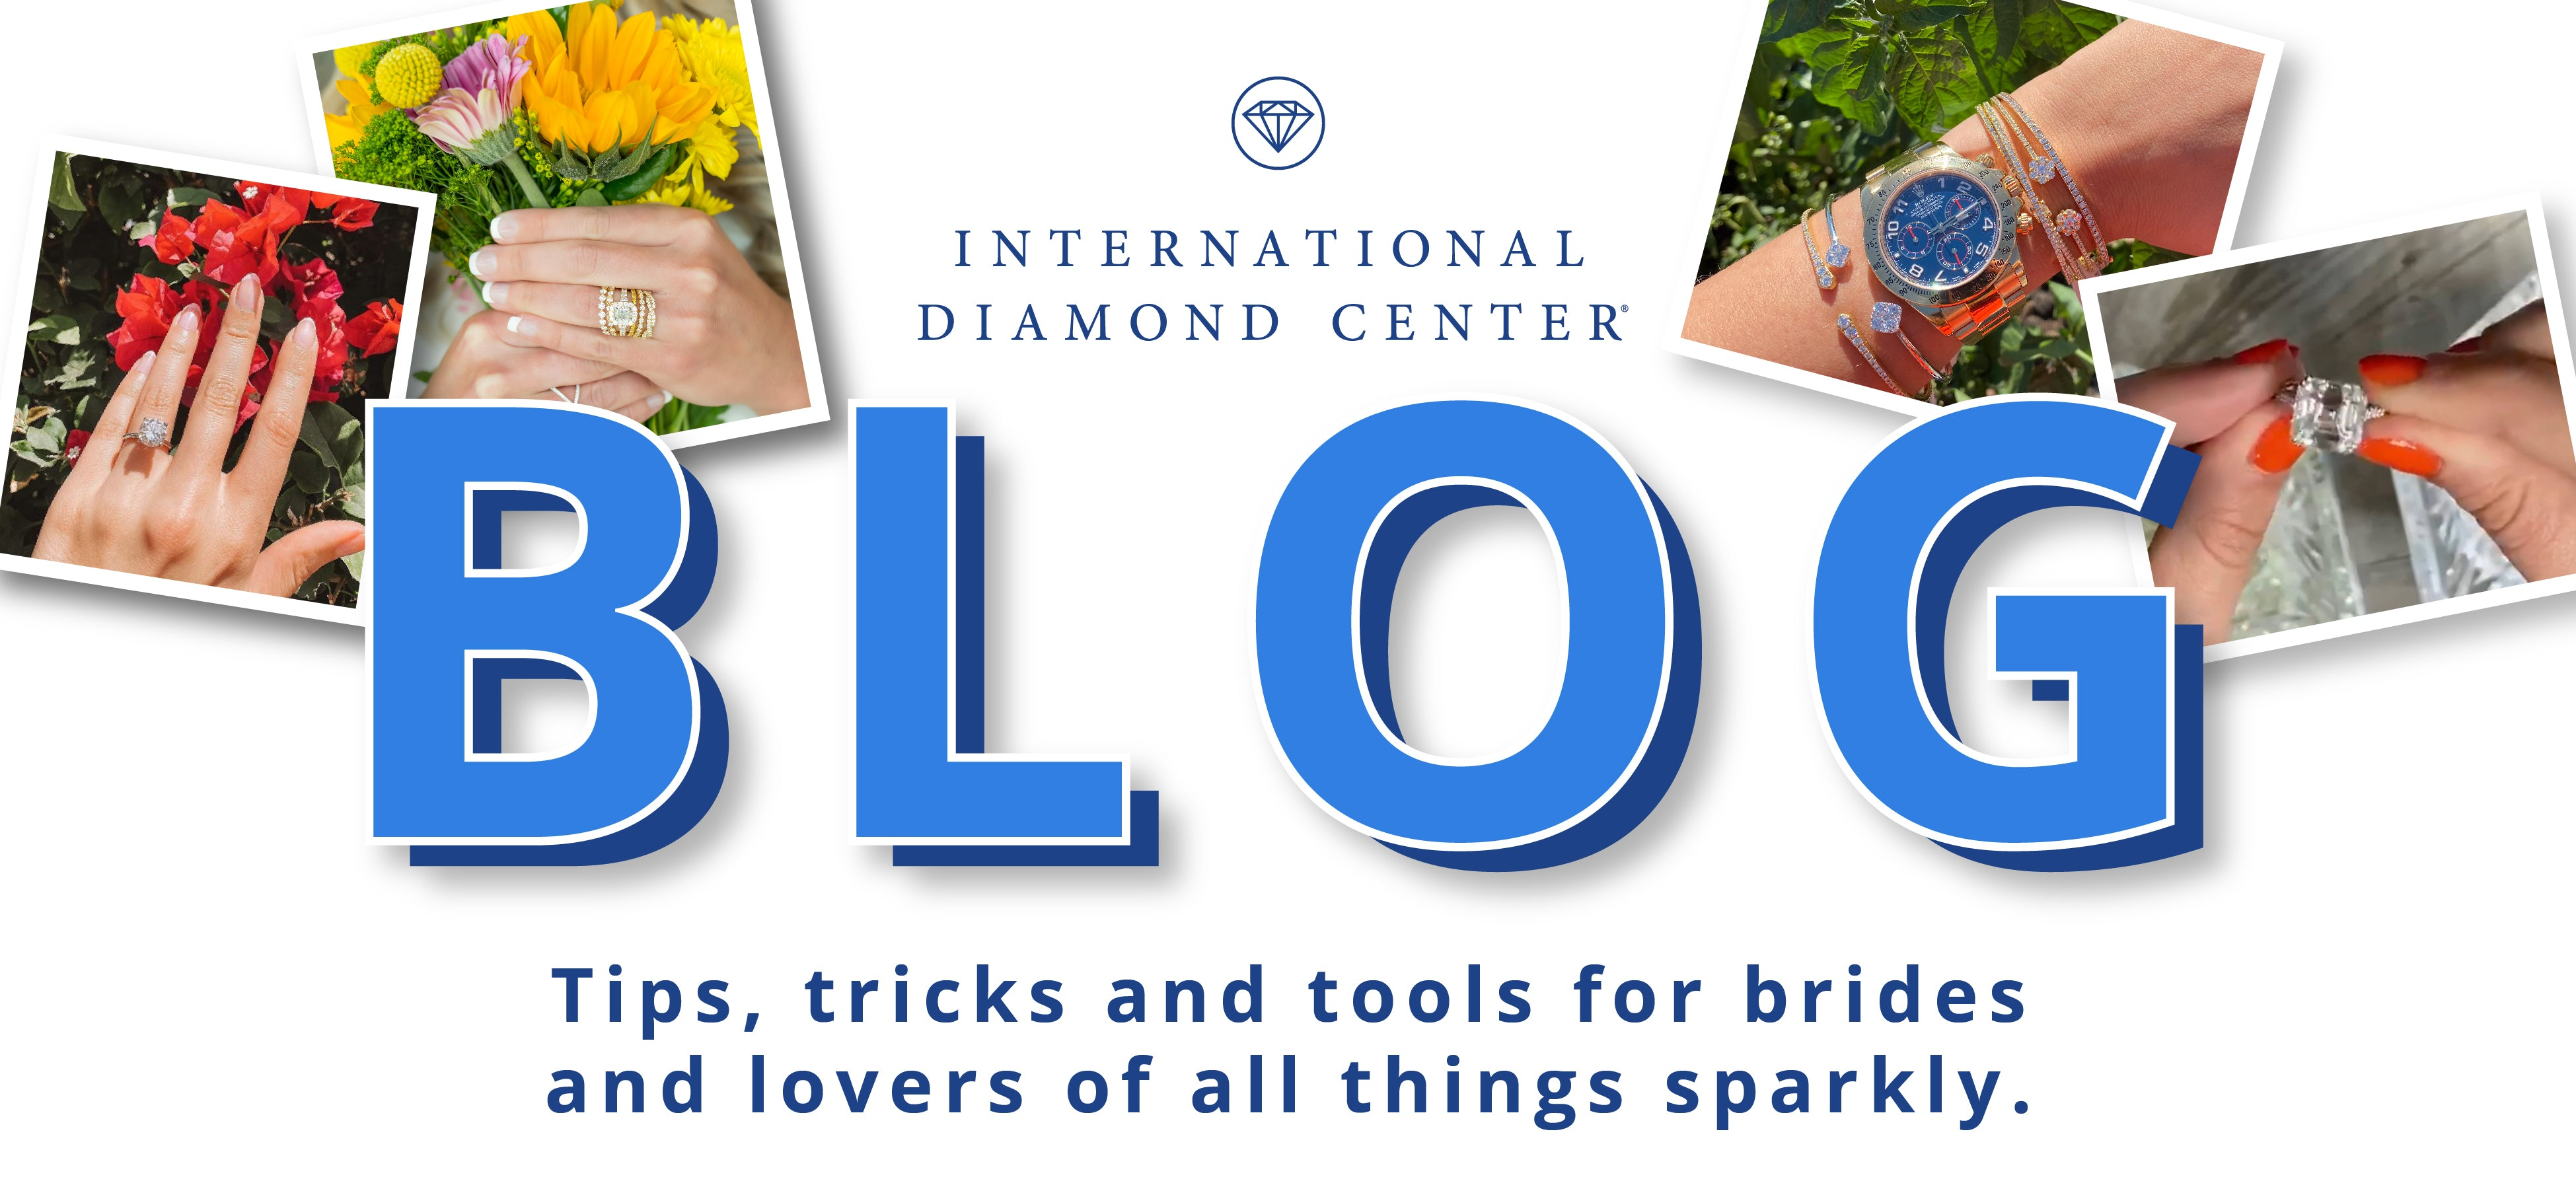 International Diamond Center Blog - Tips, tricks and tools for brides and lovers of all things sparkly